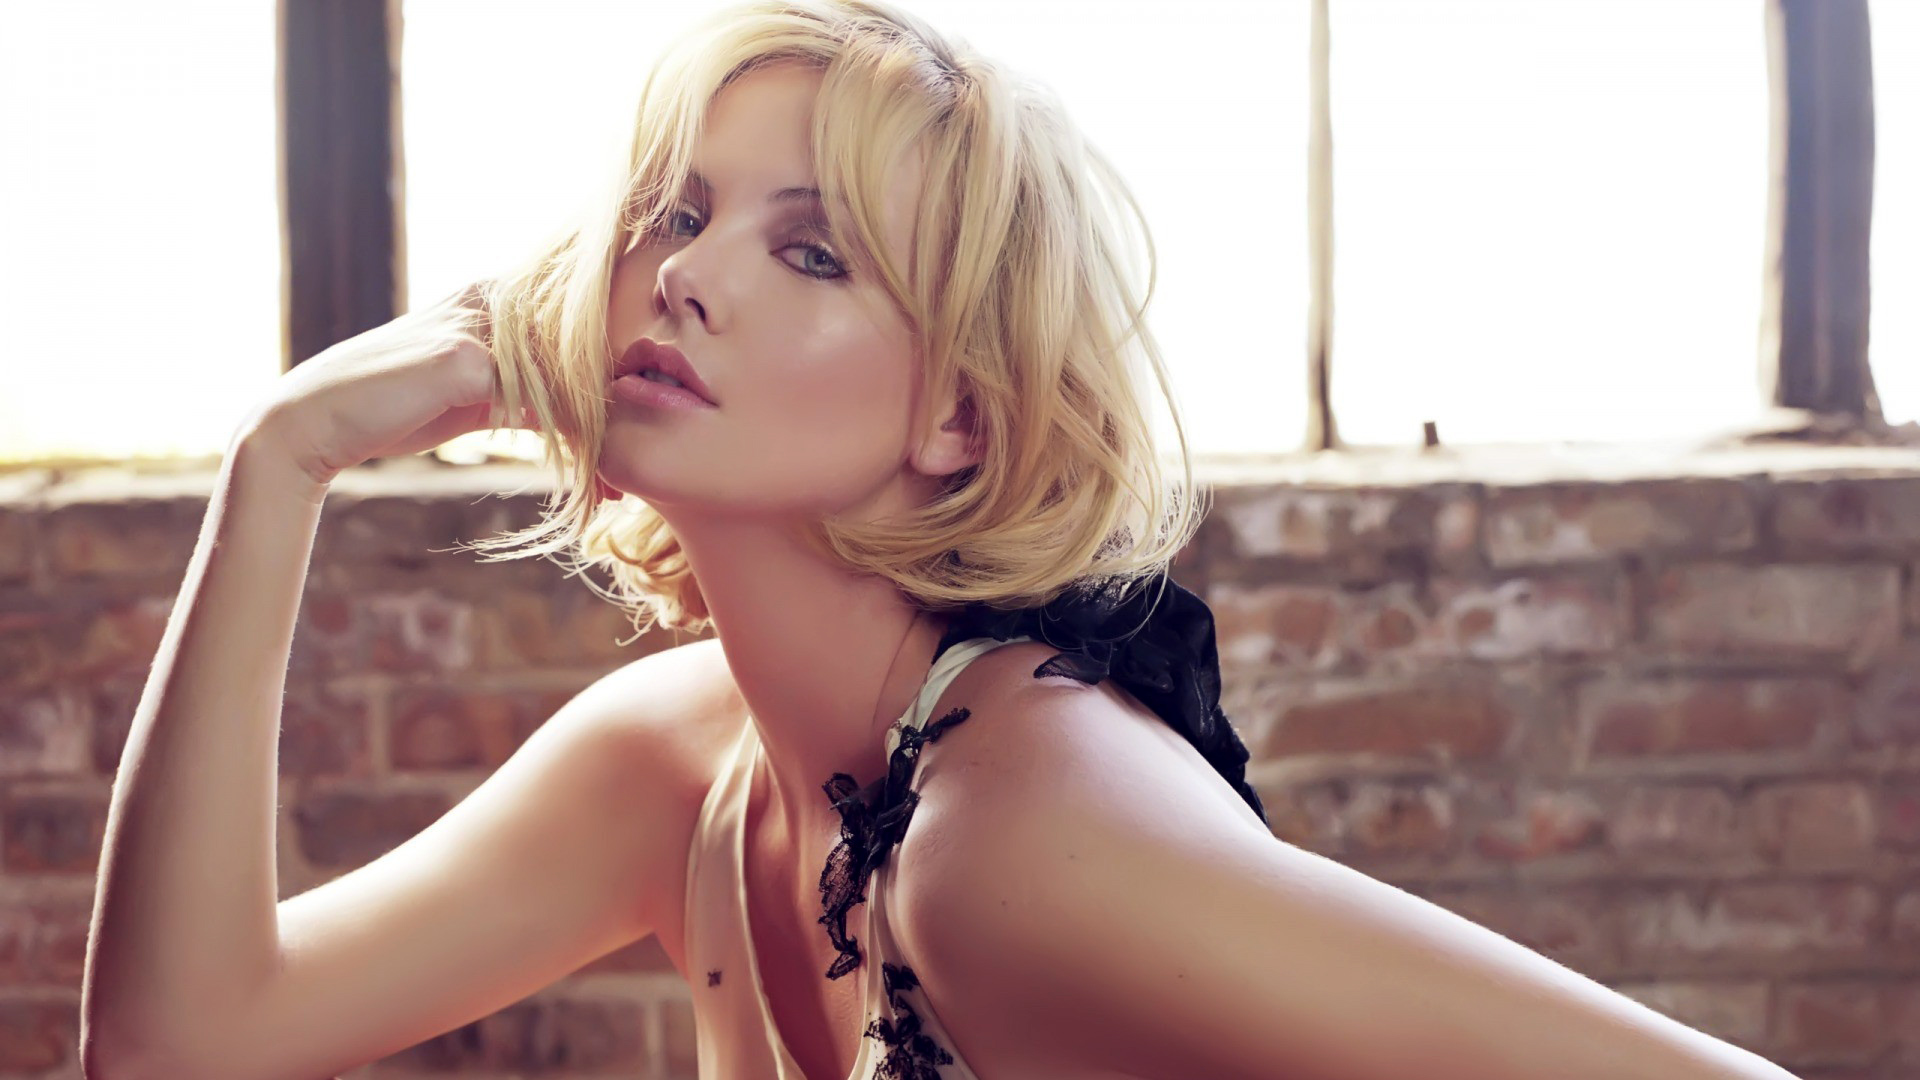 Charlize Theron Hot wallpaper download